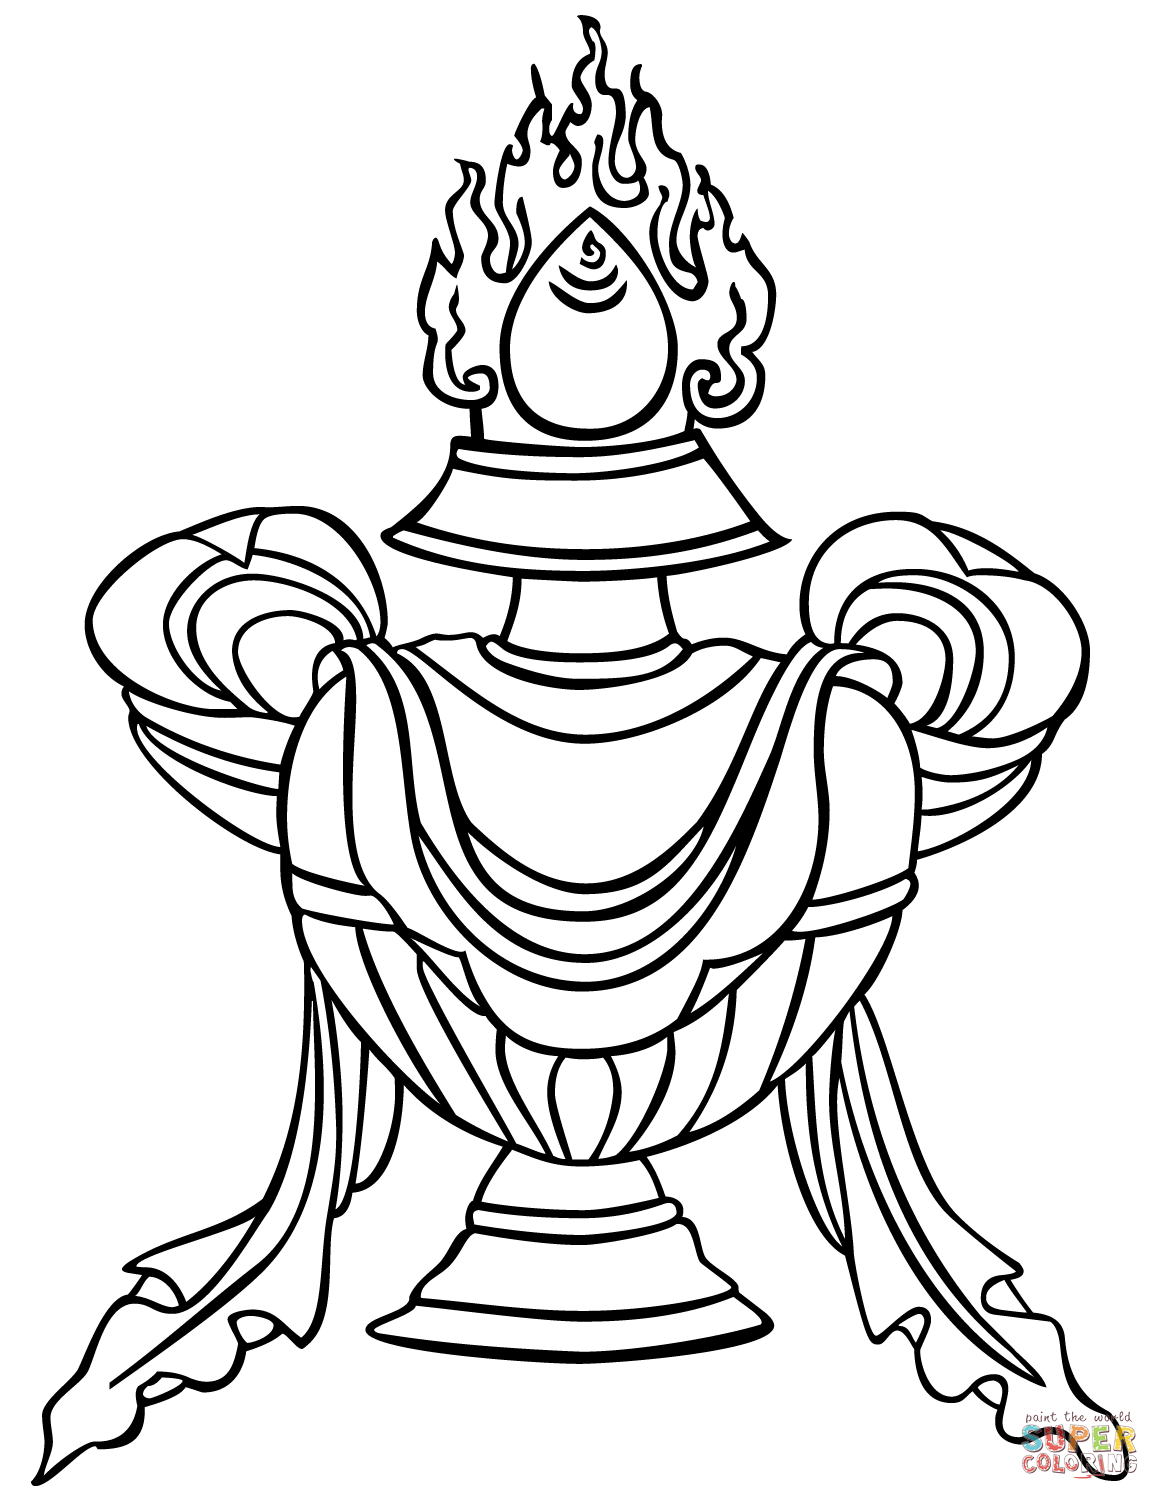 buddhist coloring pages buddha coloring pages download and print buddha coloring coloring buddhist pages 1 1